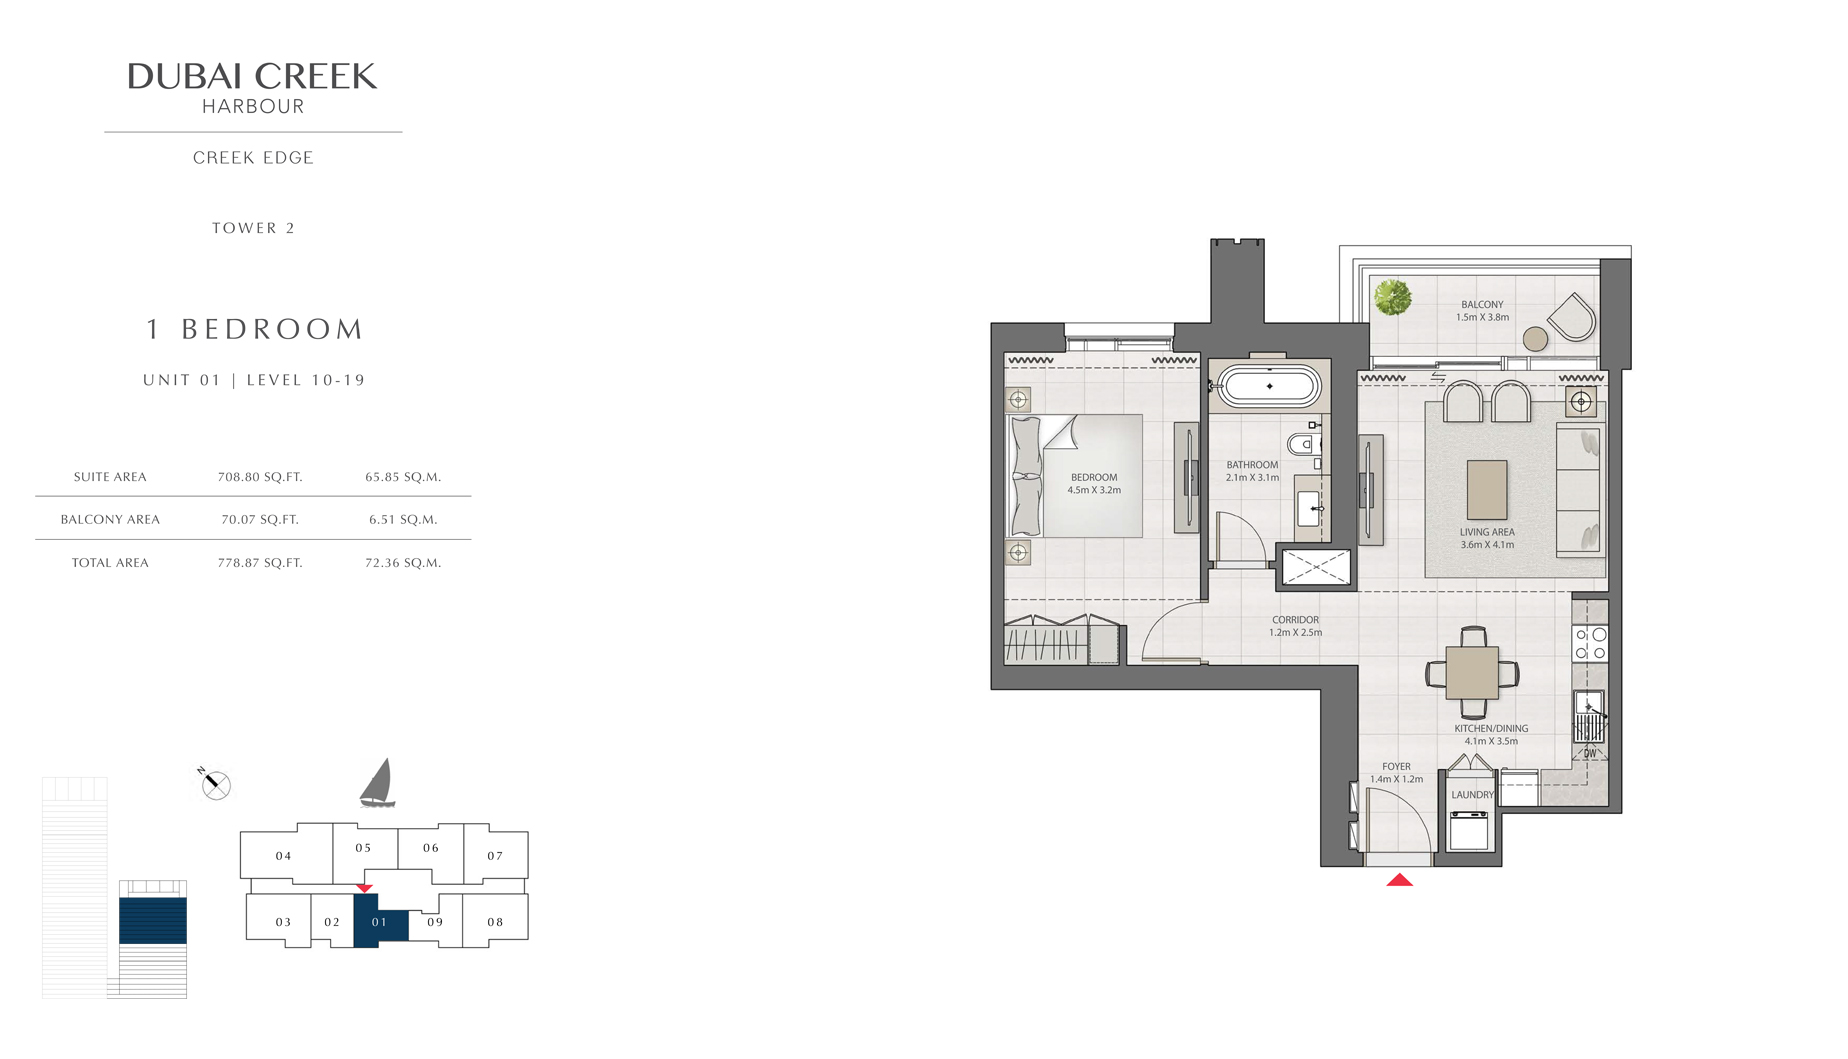 1 Bedroom Tower 2 Unit 01 Level 10-19 Size 778 sq.ft